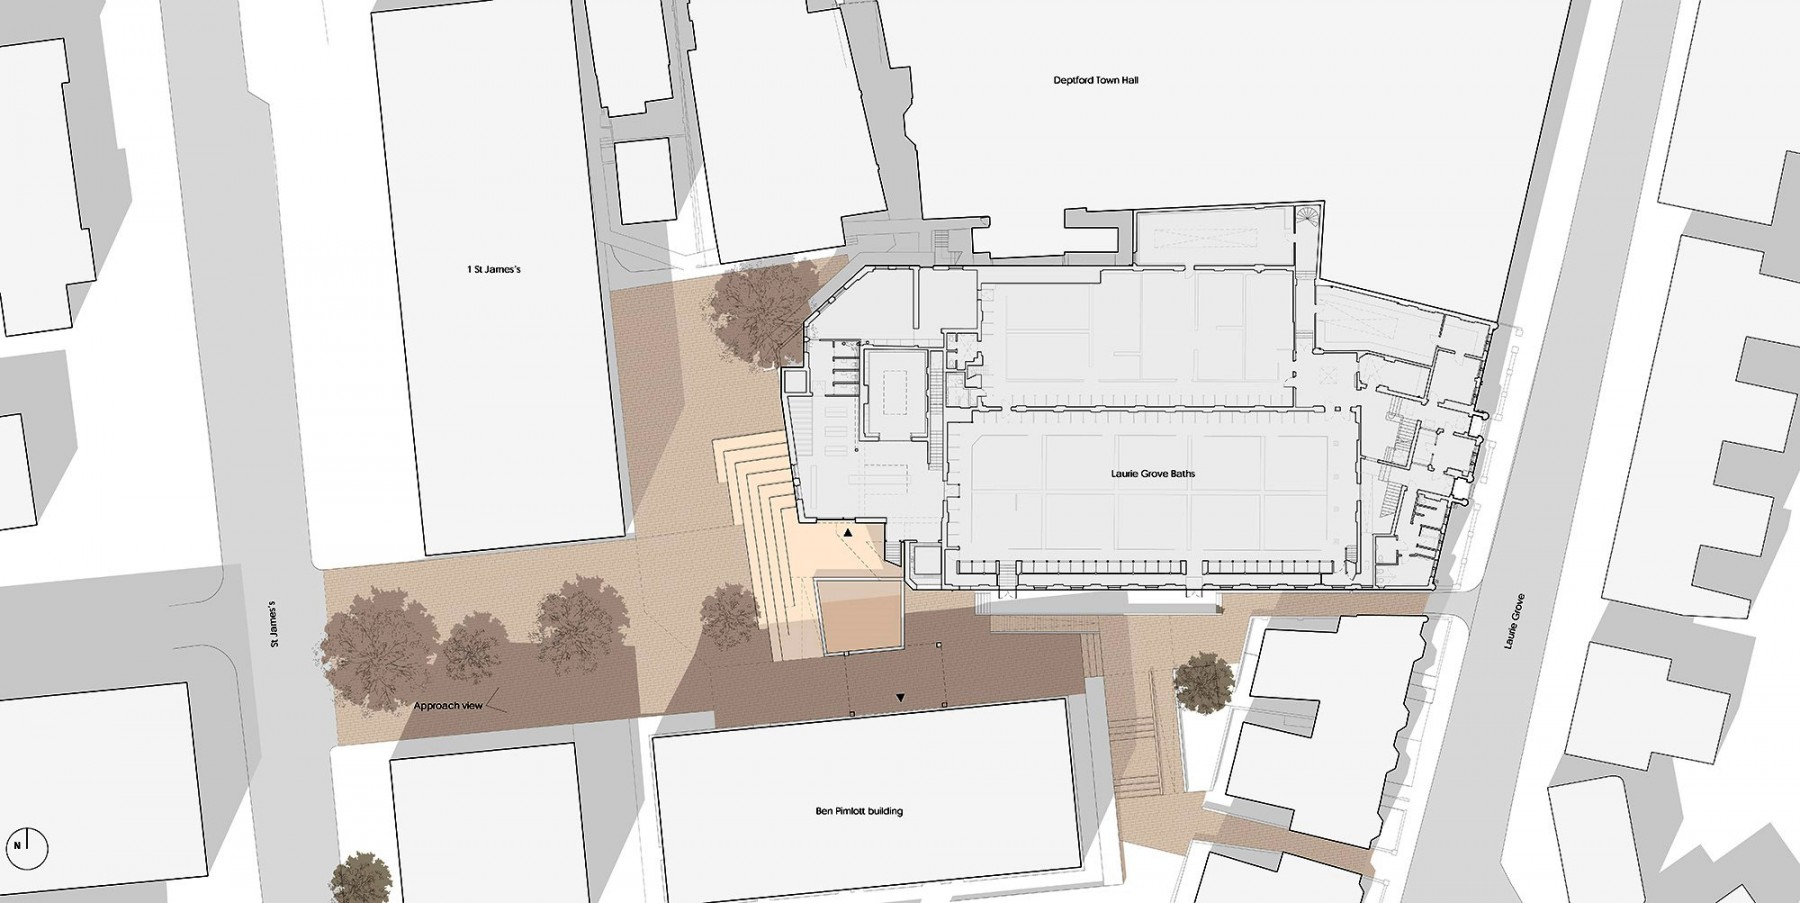 Goldsmiths-competition-gallery-London-contemporary-art-short-list-Jamie-Fobert-architects-site plan